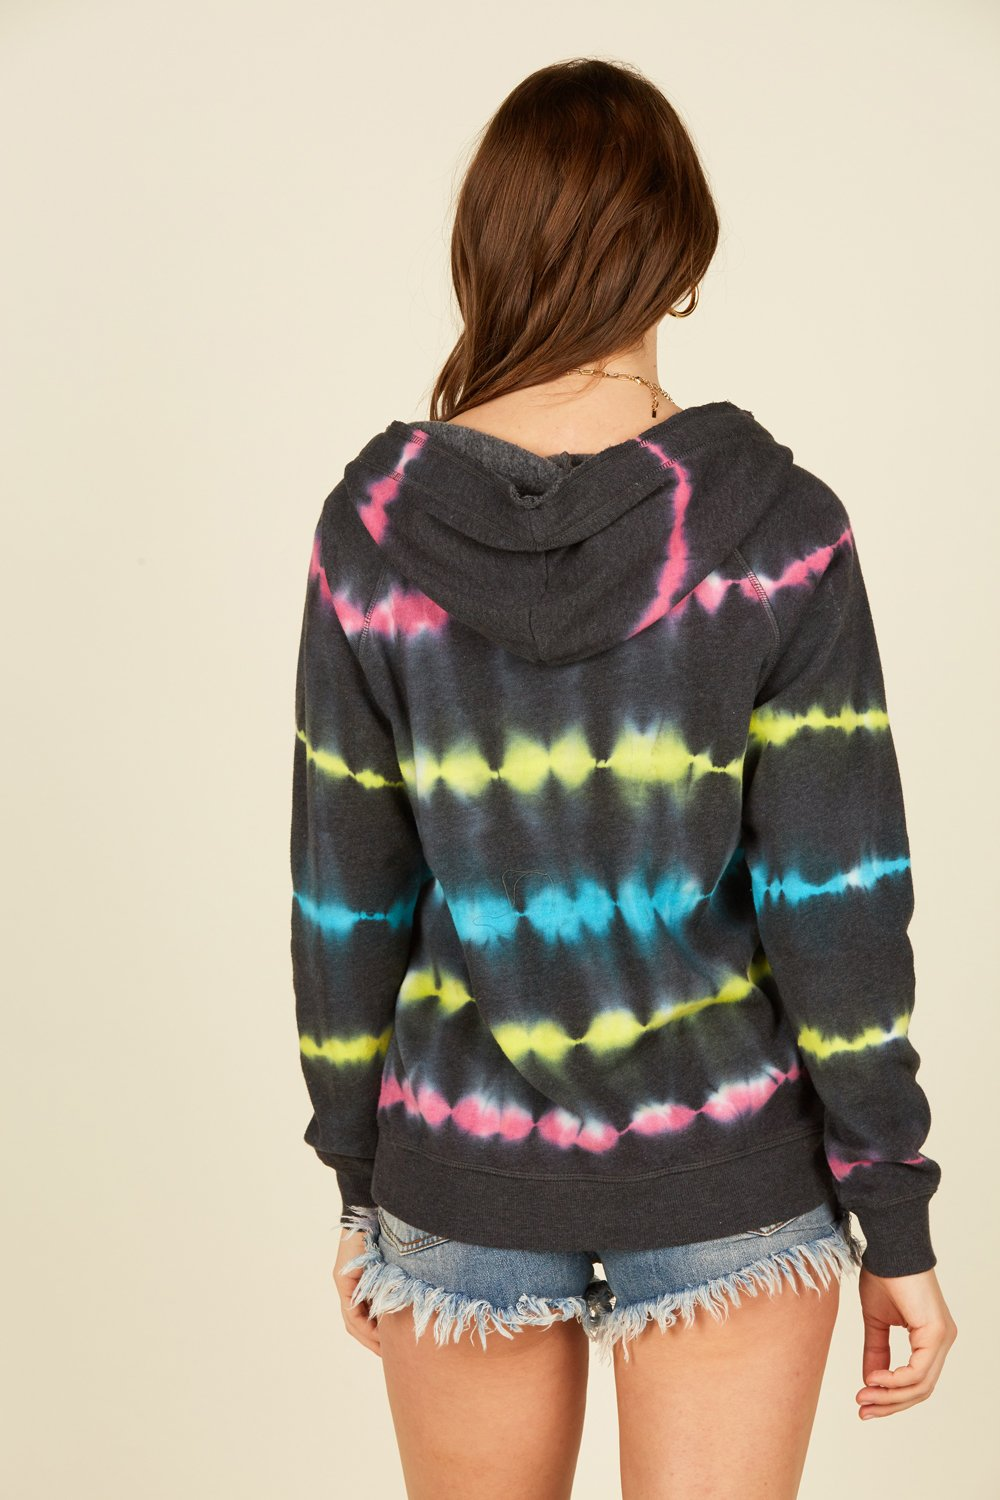 sweatshirt - EYE ON FASHION BOUTIQUE